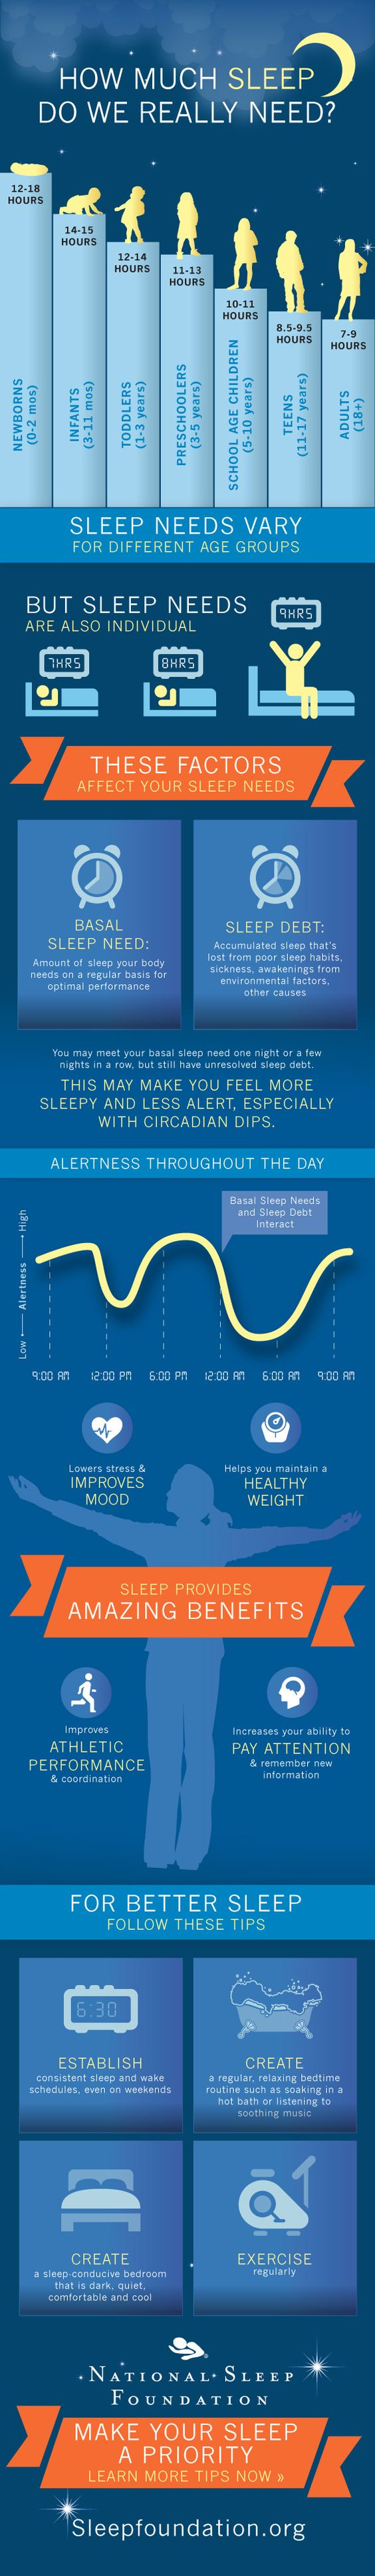 How much sleep do we really need - via sleepfoundation.org